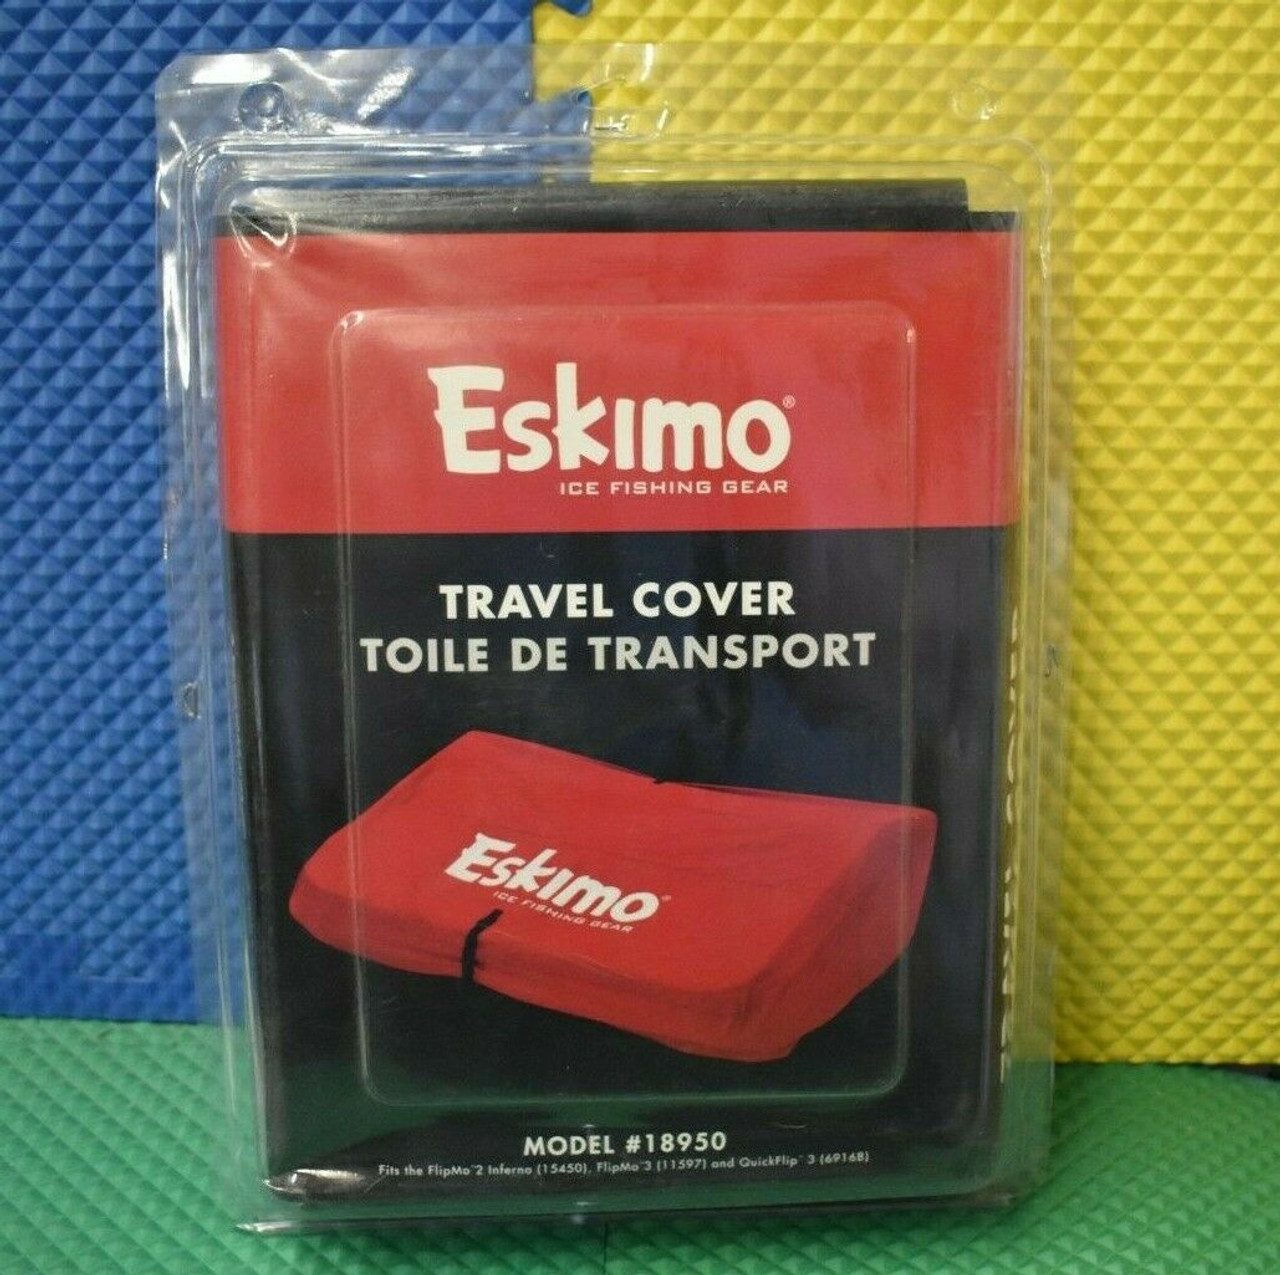 Eskimo Ice Fishing Gear 70 Inch Travel Cover Extra Tall #18950